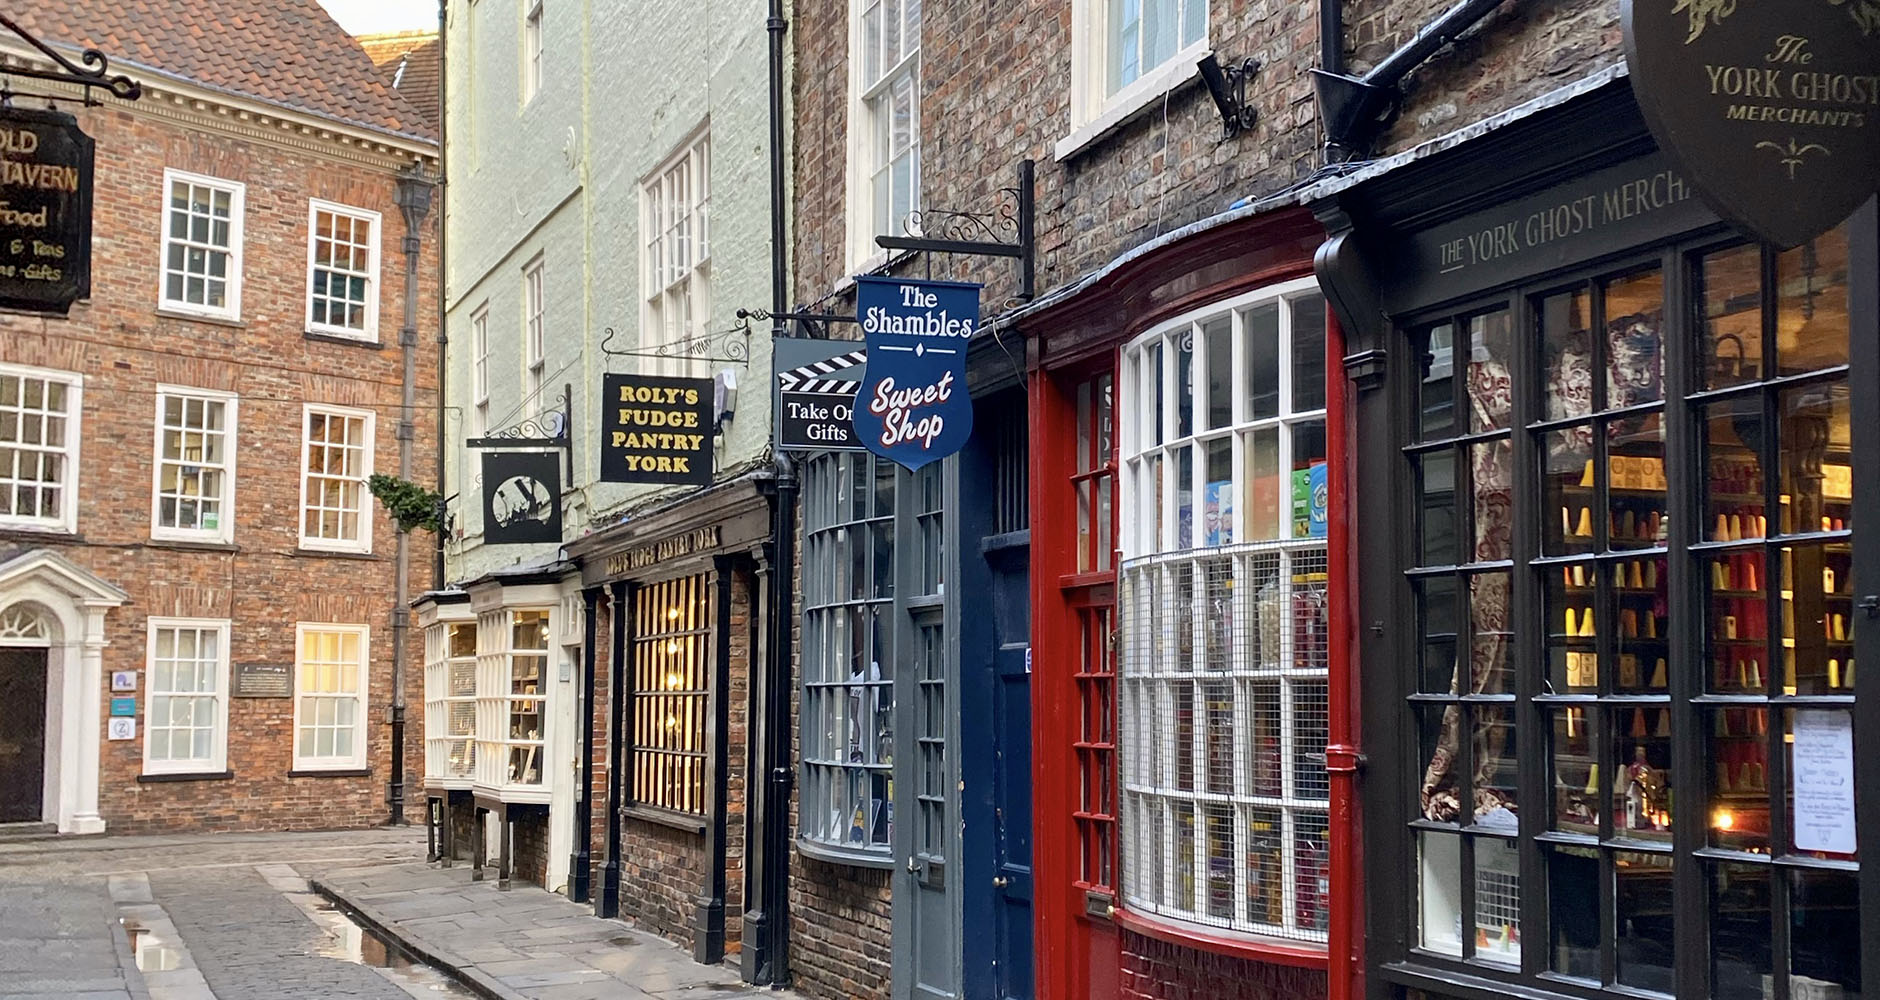 The famous narrow medieval street known as the Shambles